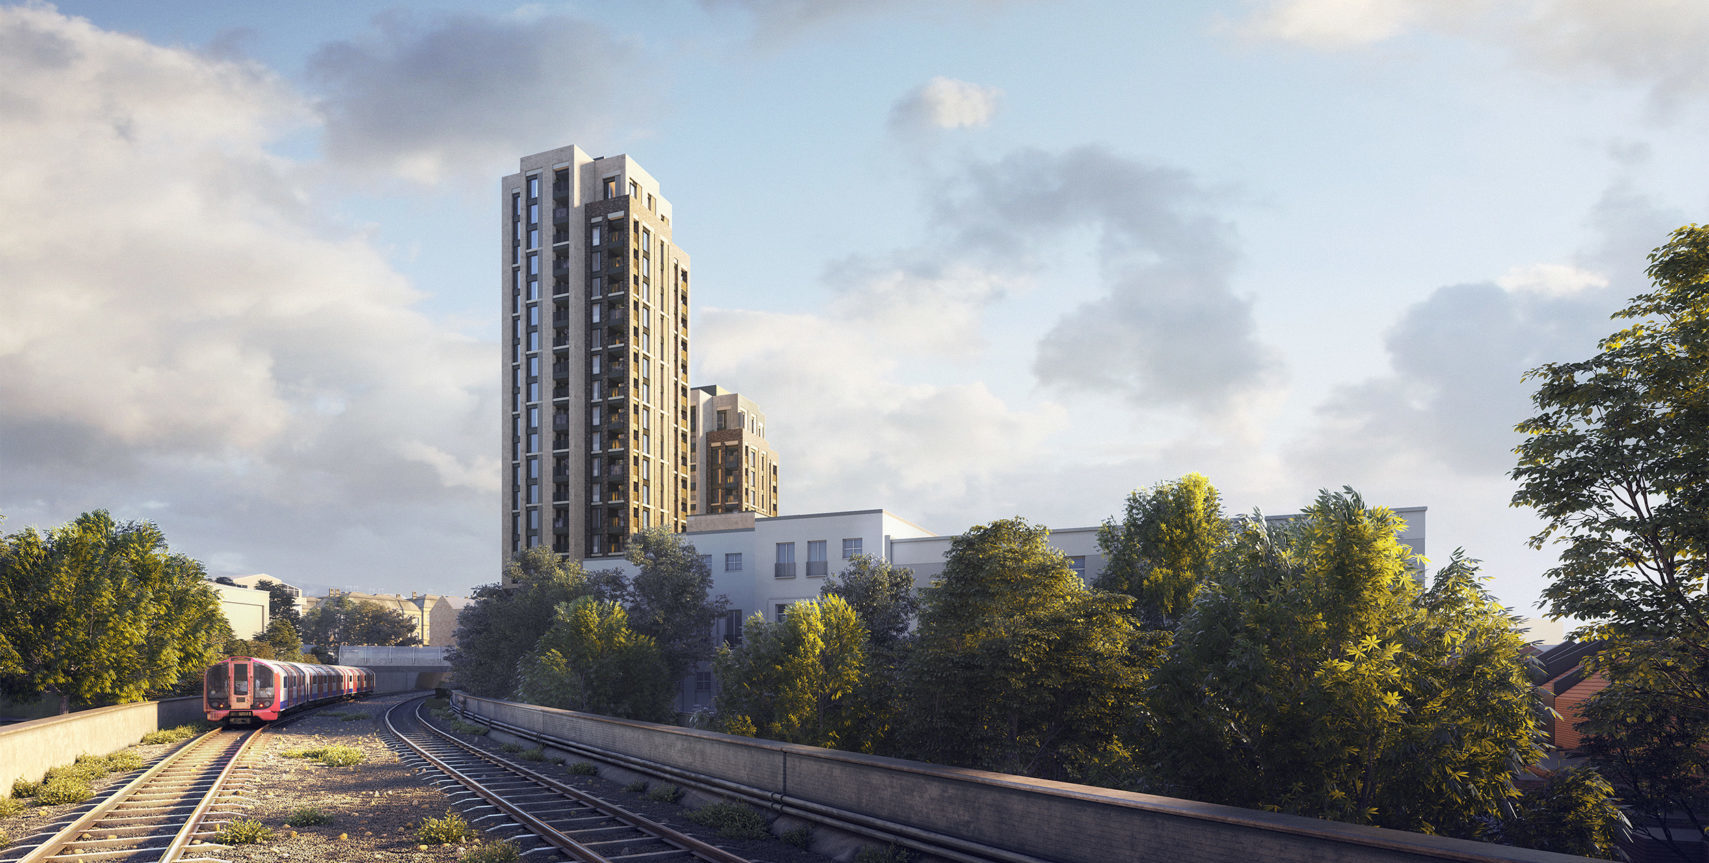 An impression of how the Southgate Office Village development would look, viewed from the Piccadilly Line